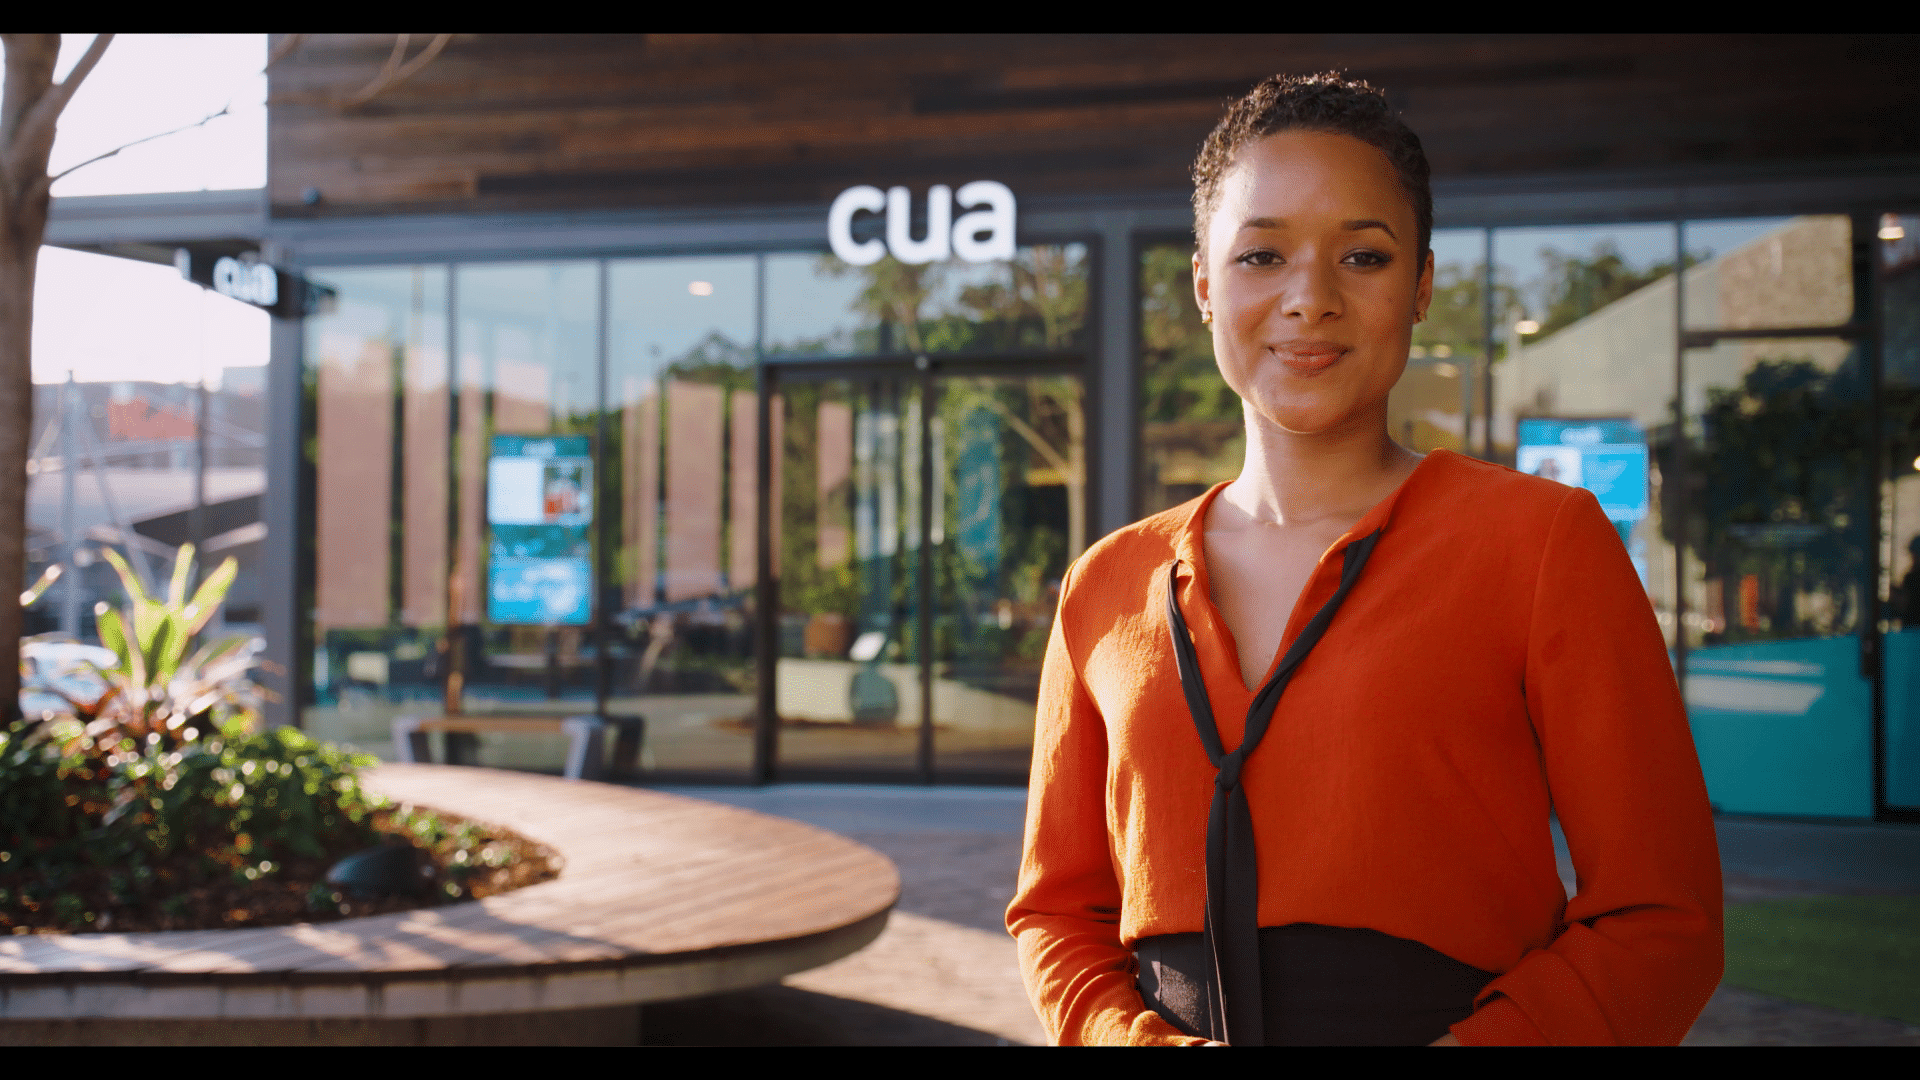 Corporate video presenter stands in front of a CUA branch on a sunny day.